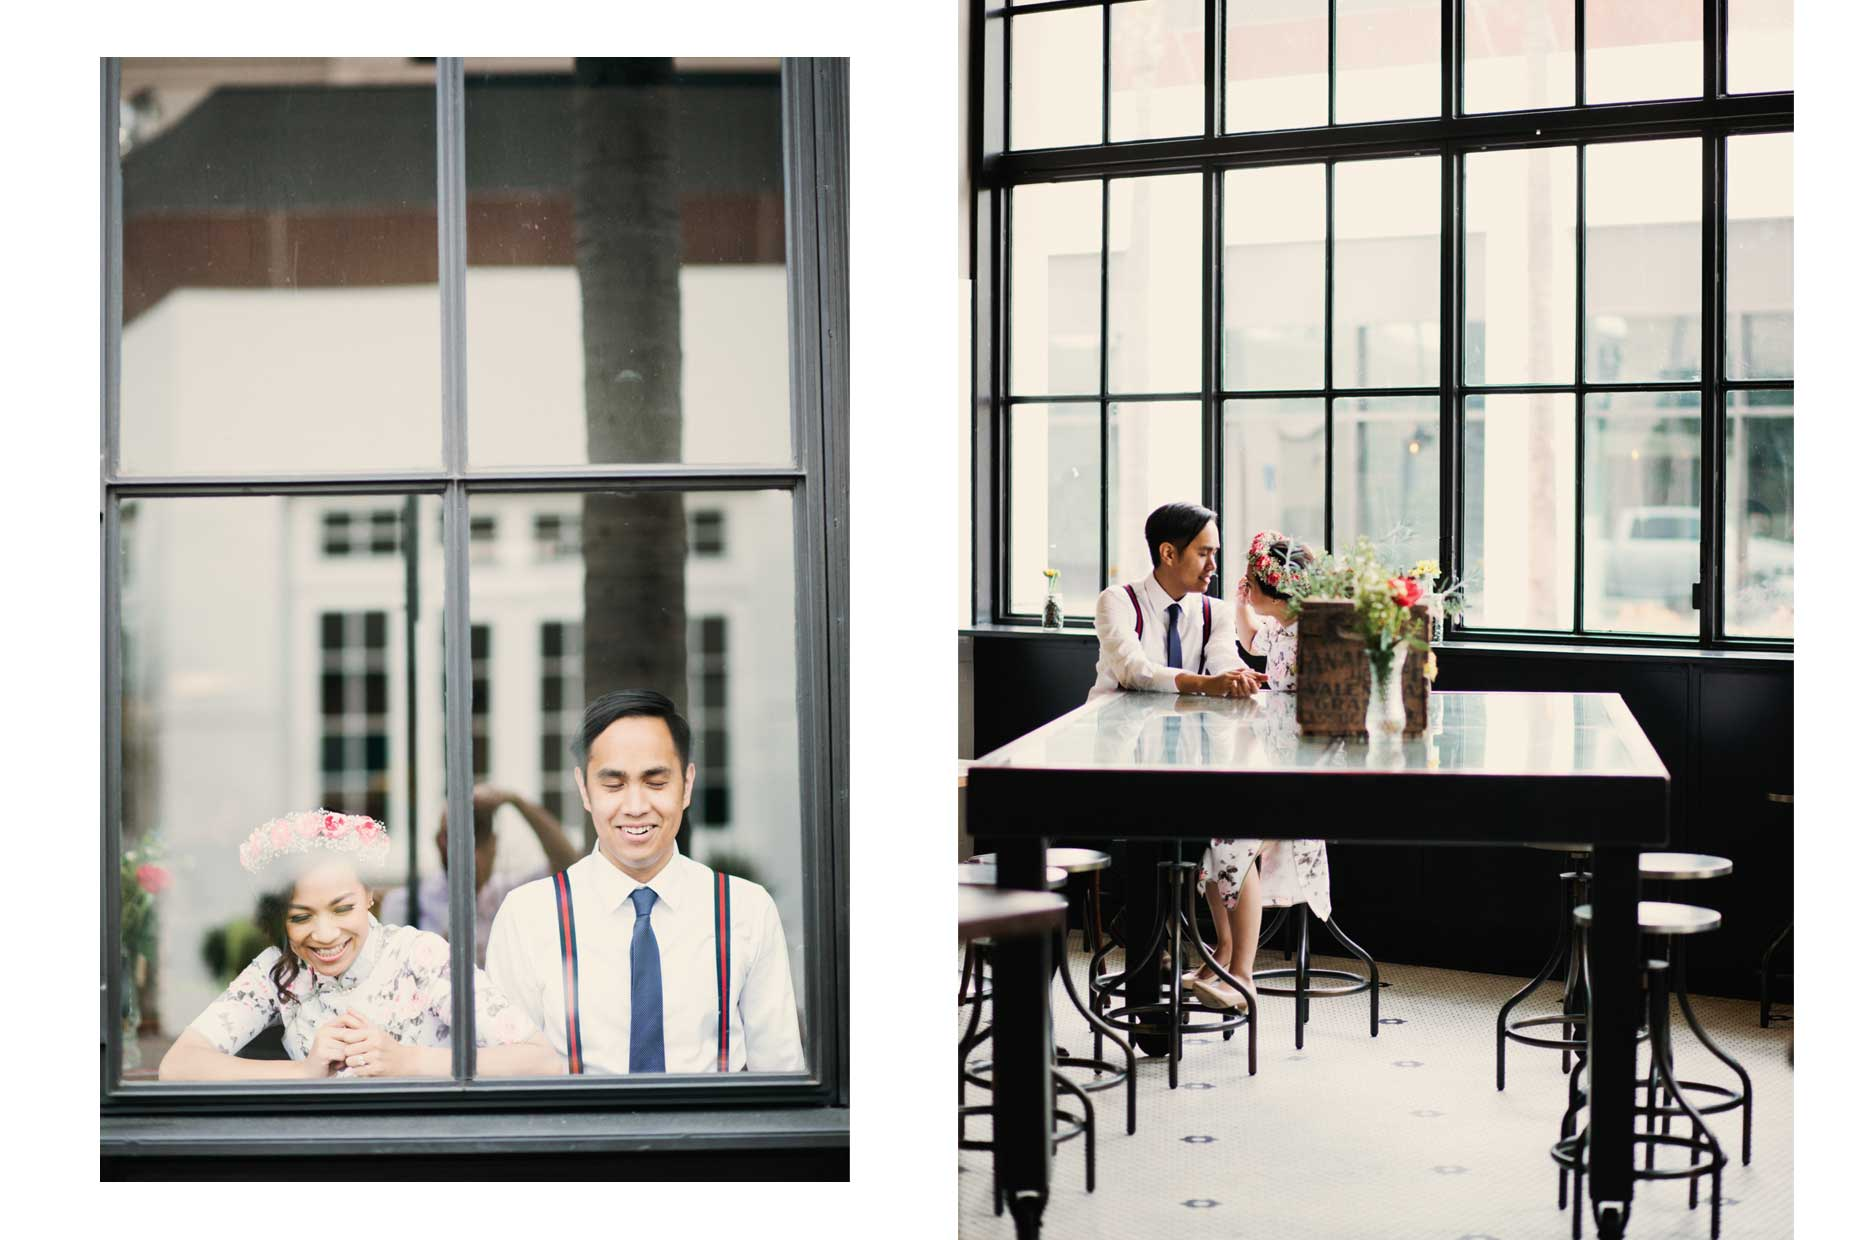 editorial wedding photographers modern in palm springs san diego downtown 47-Pierre-olivier-Photography-_-Fuji-Film